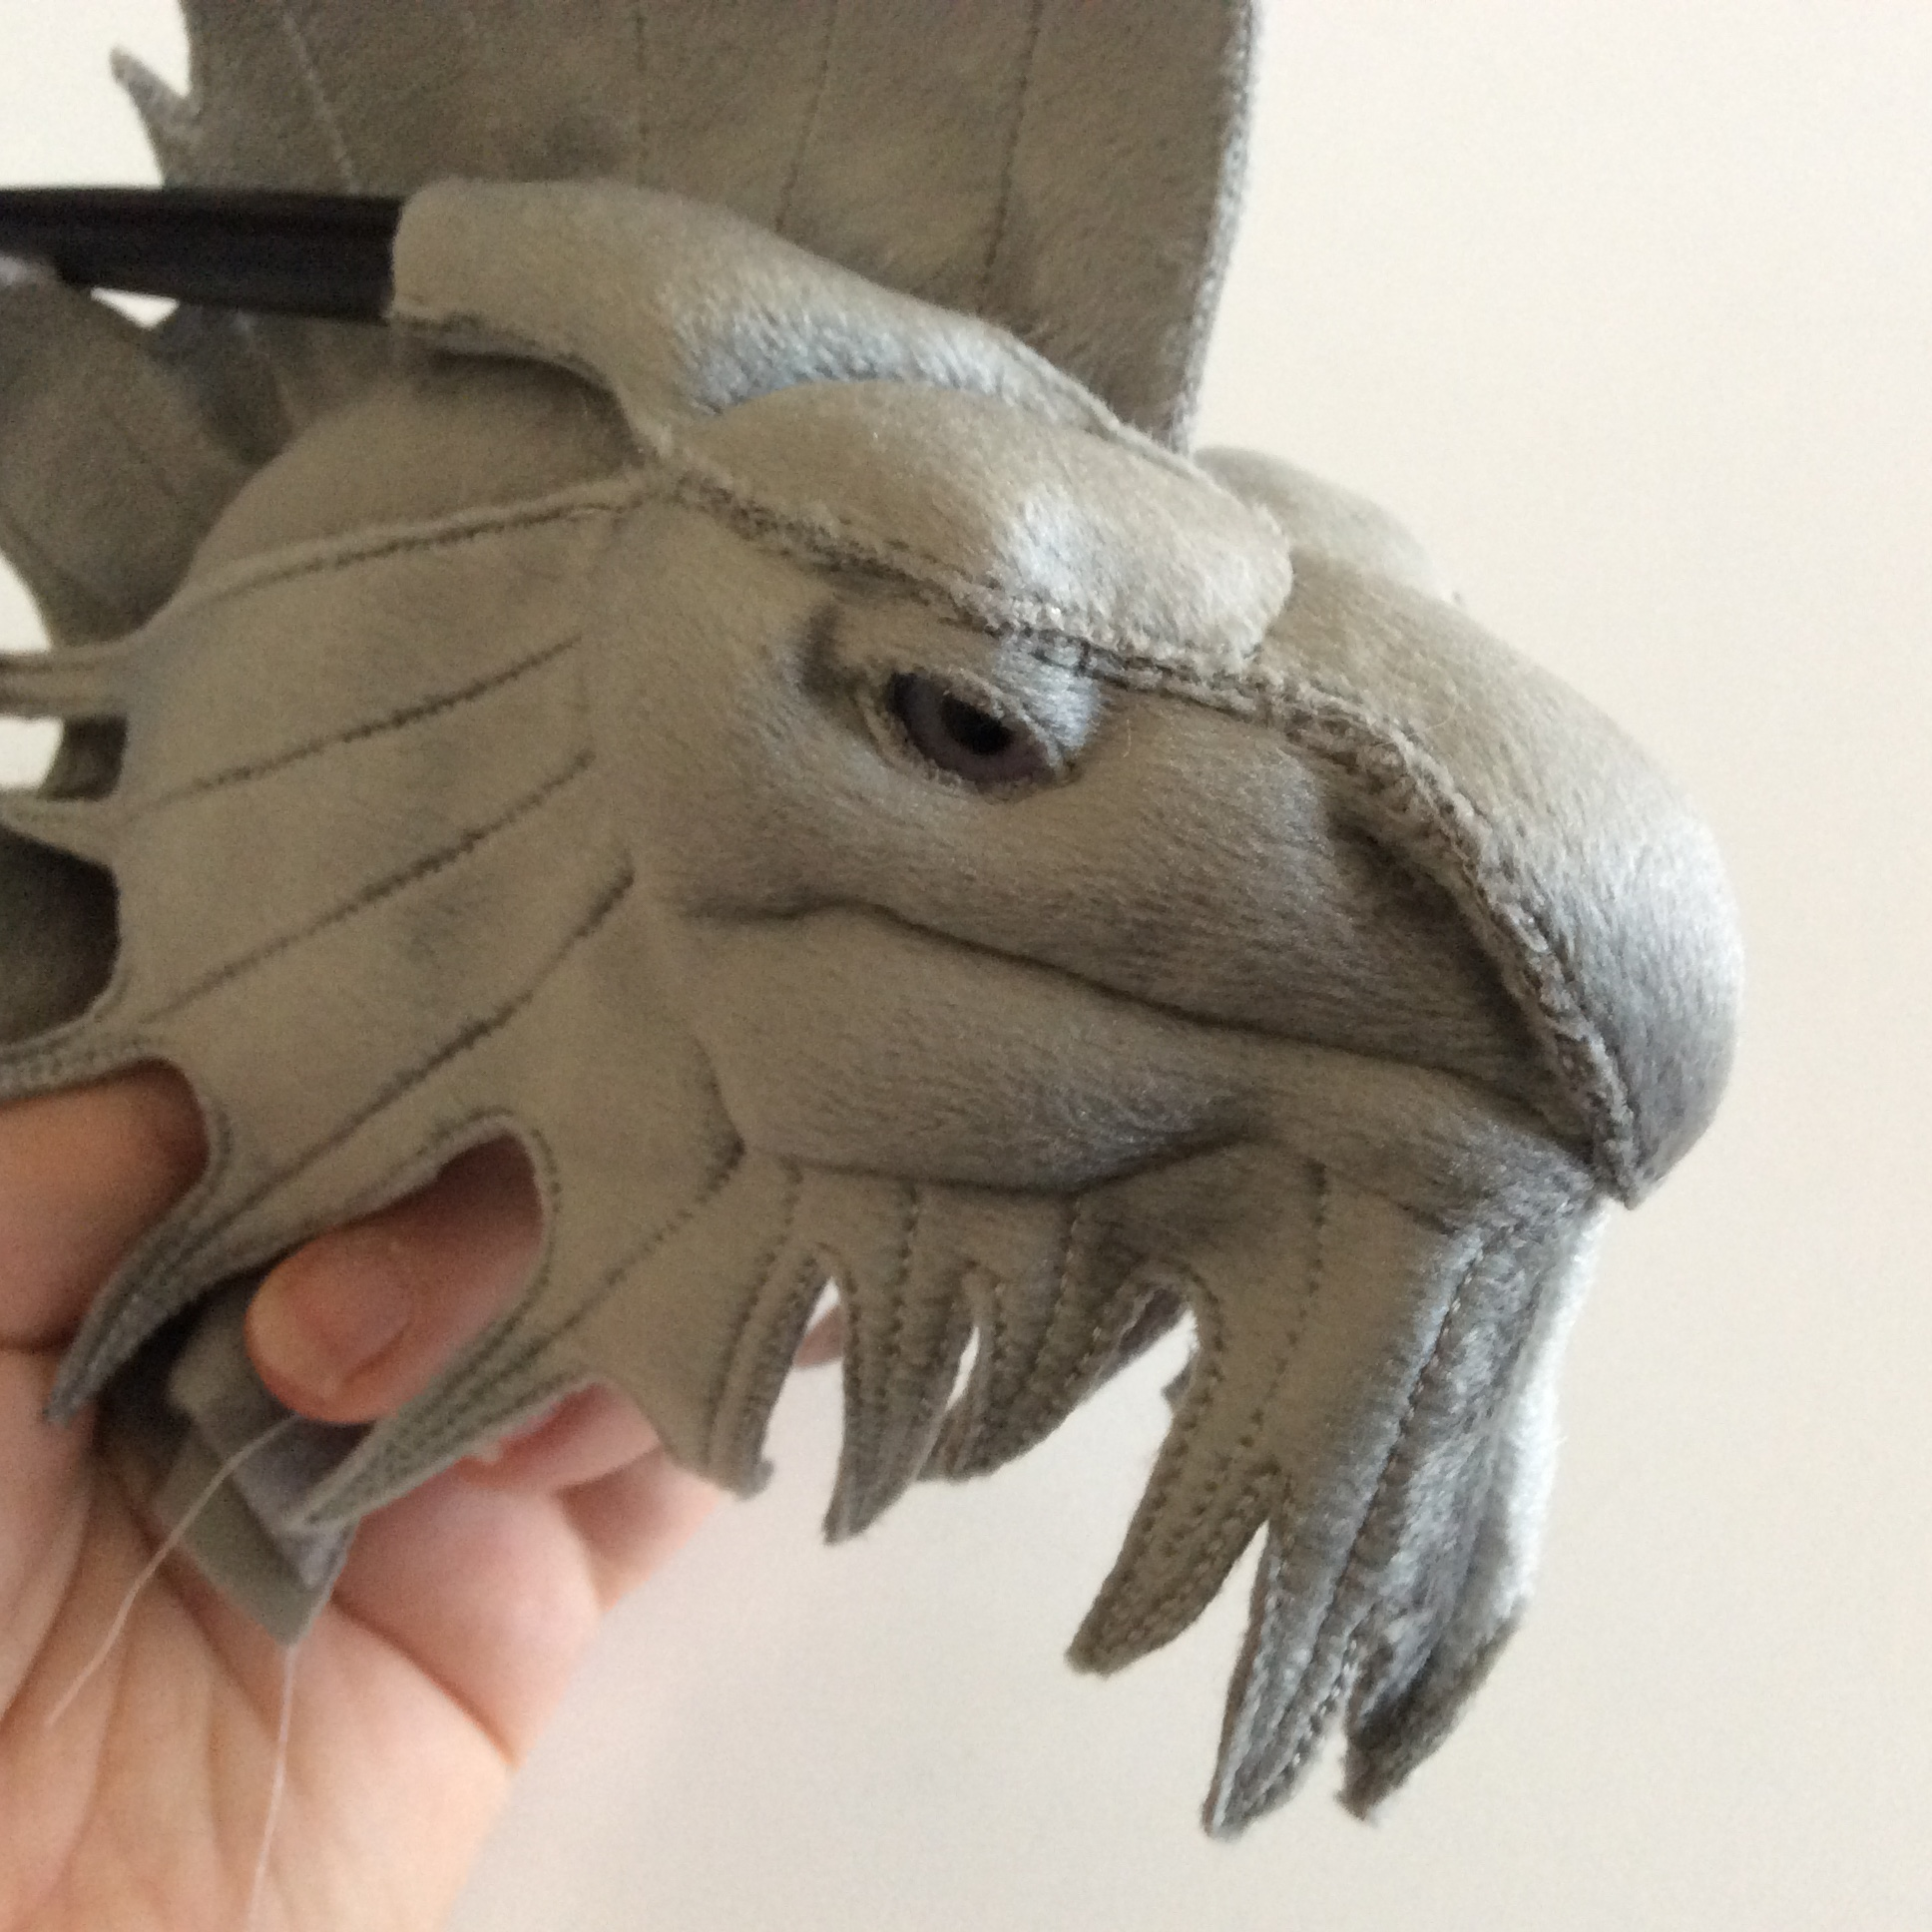 A silver dragon fabric sculpture work in progress.